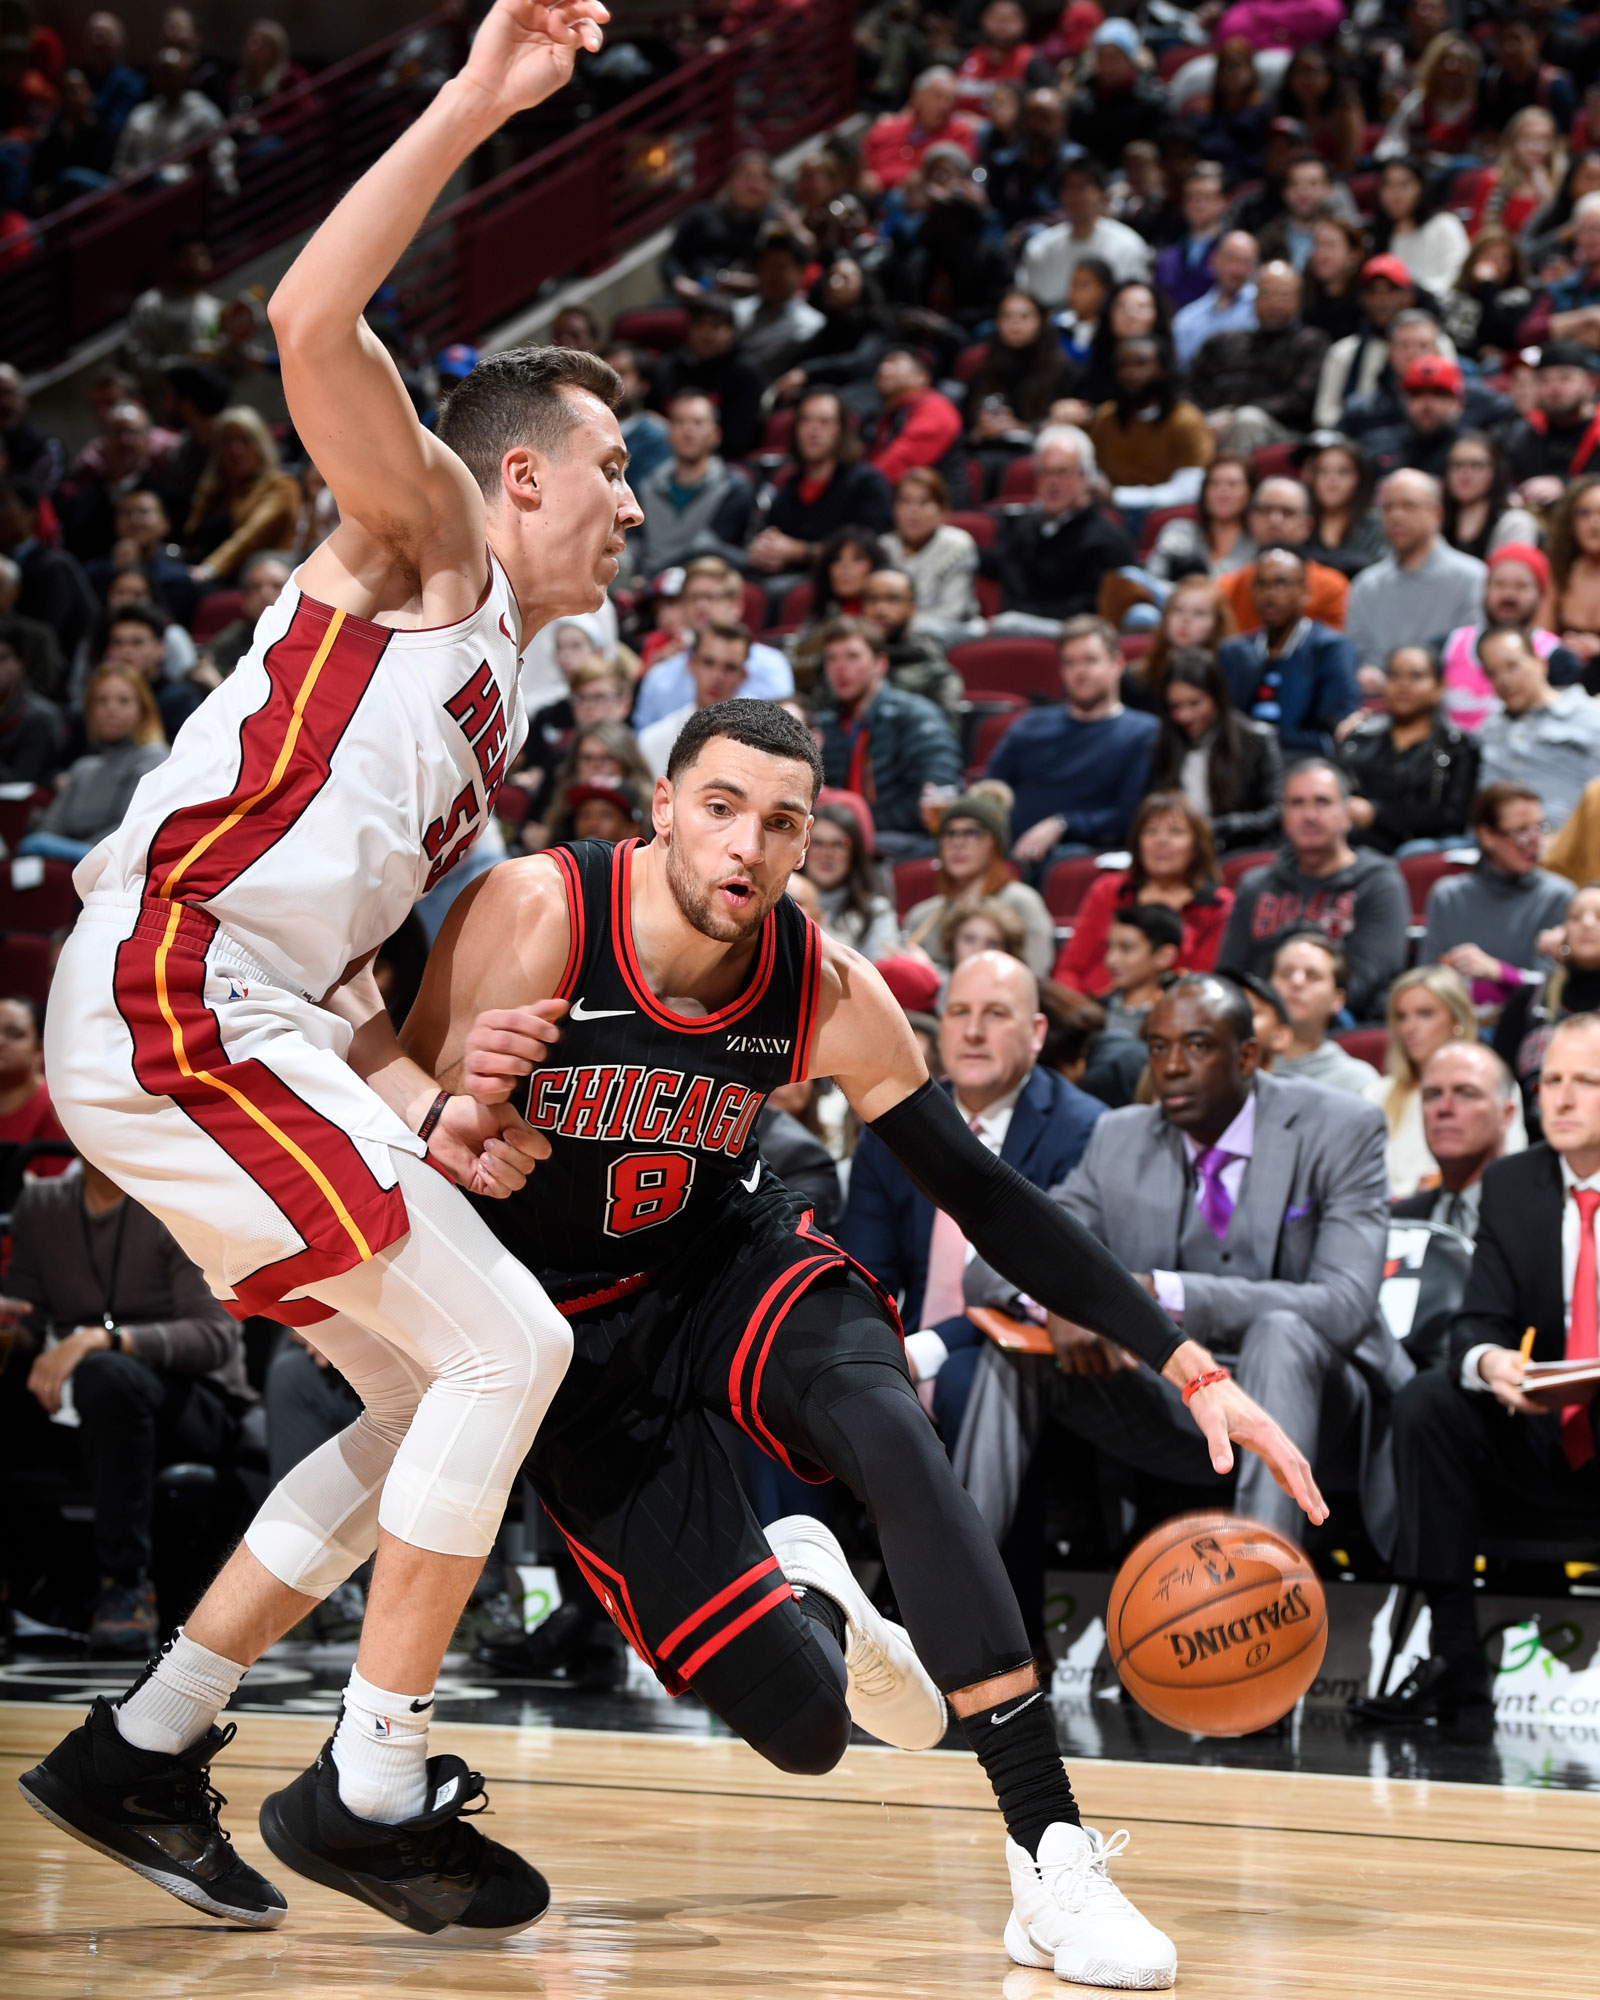 Zach LaVine drives to the basket against the Miami Heat